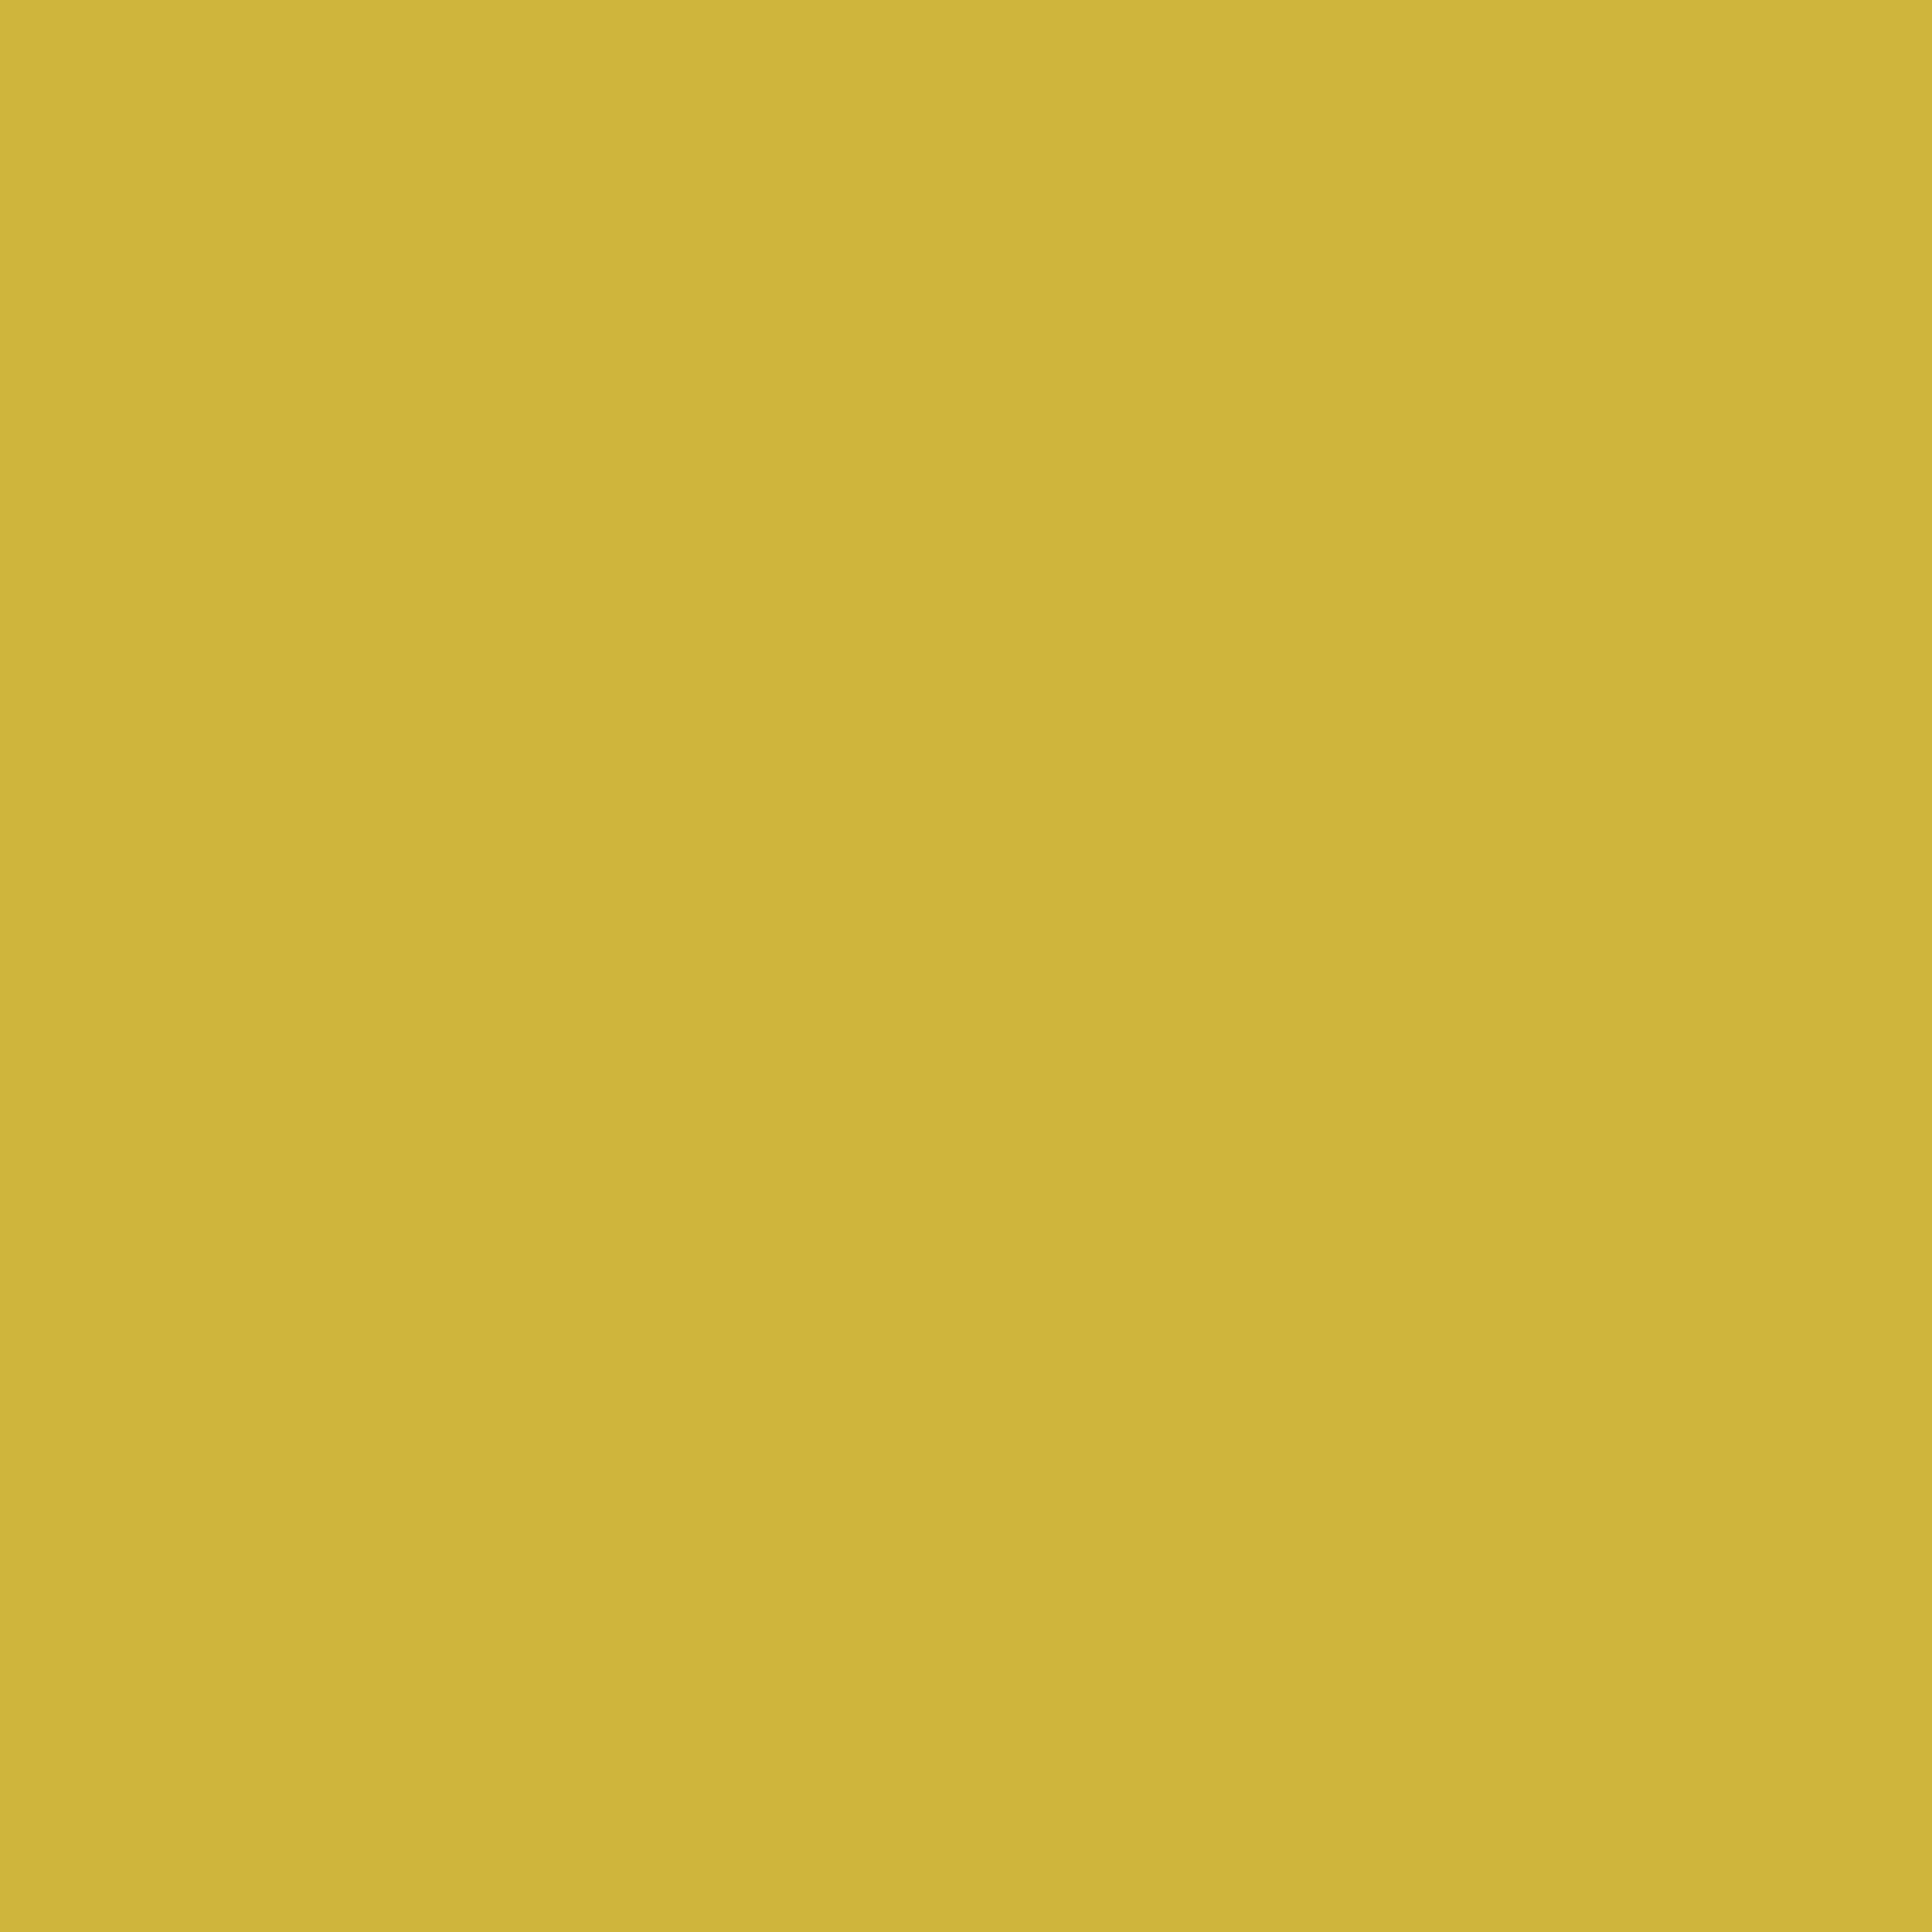 2048x2048 Old Gold Solid Color Background